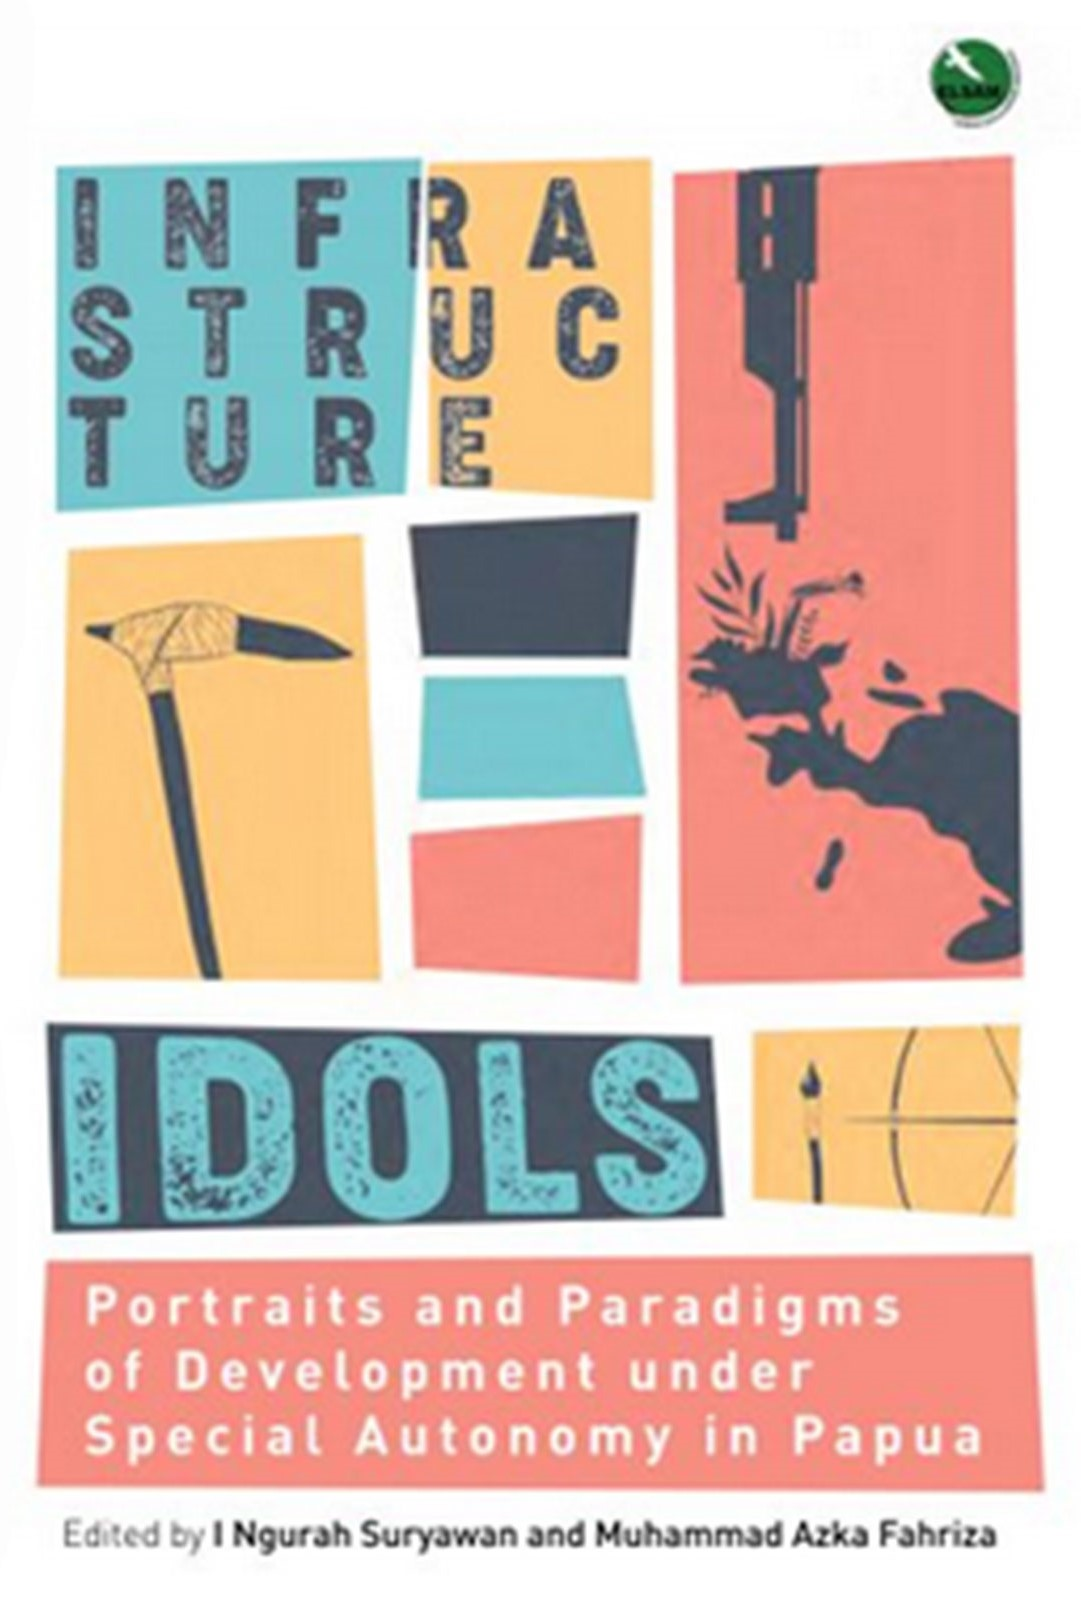 Infrastructure Idols: Portraits and Paradigms of Development under Special Autonomy in Papua